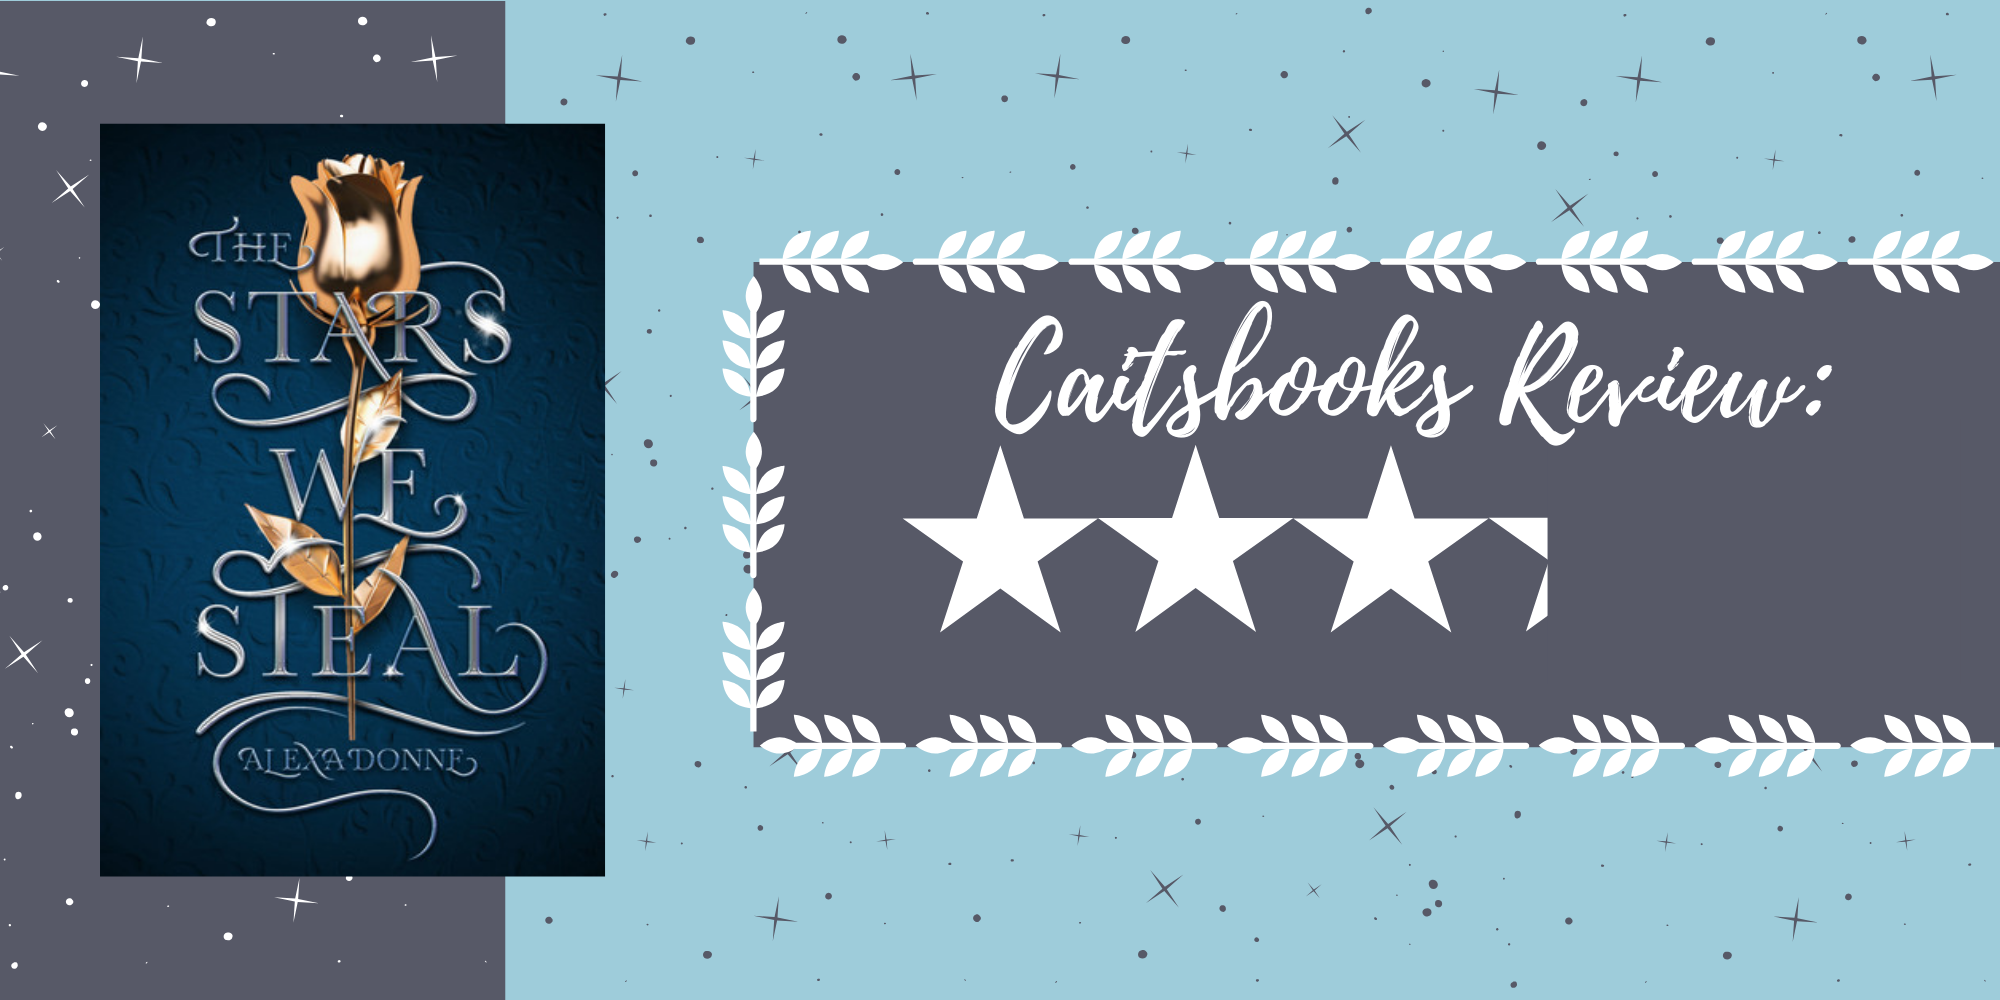 Caitsbooks Reviews The Stars We Steal